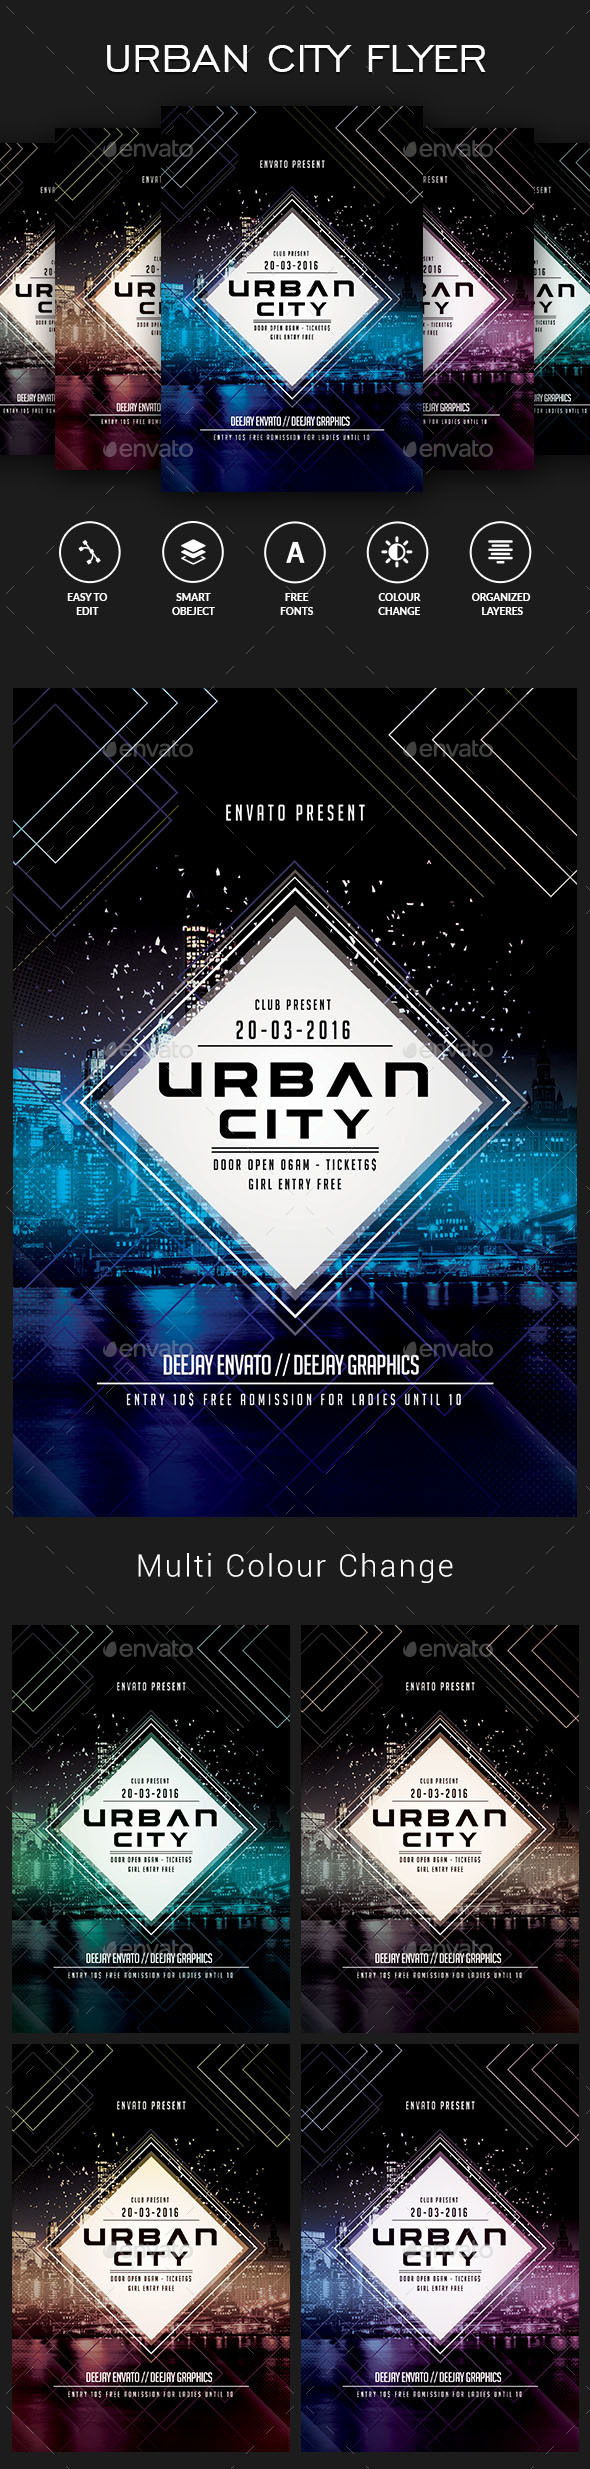 Urban City Flyer - Clubs & Parties Events